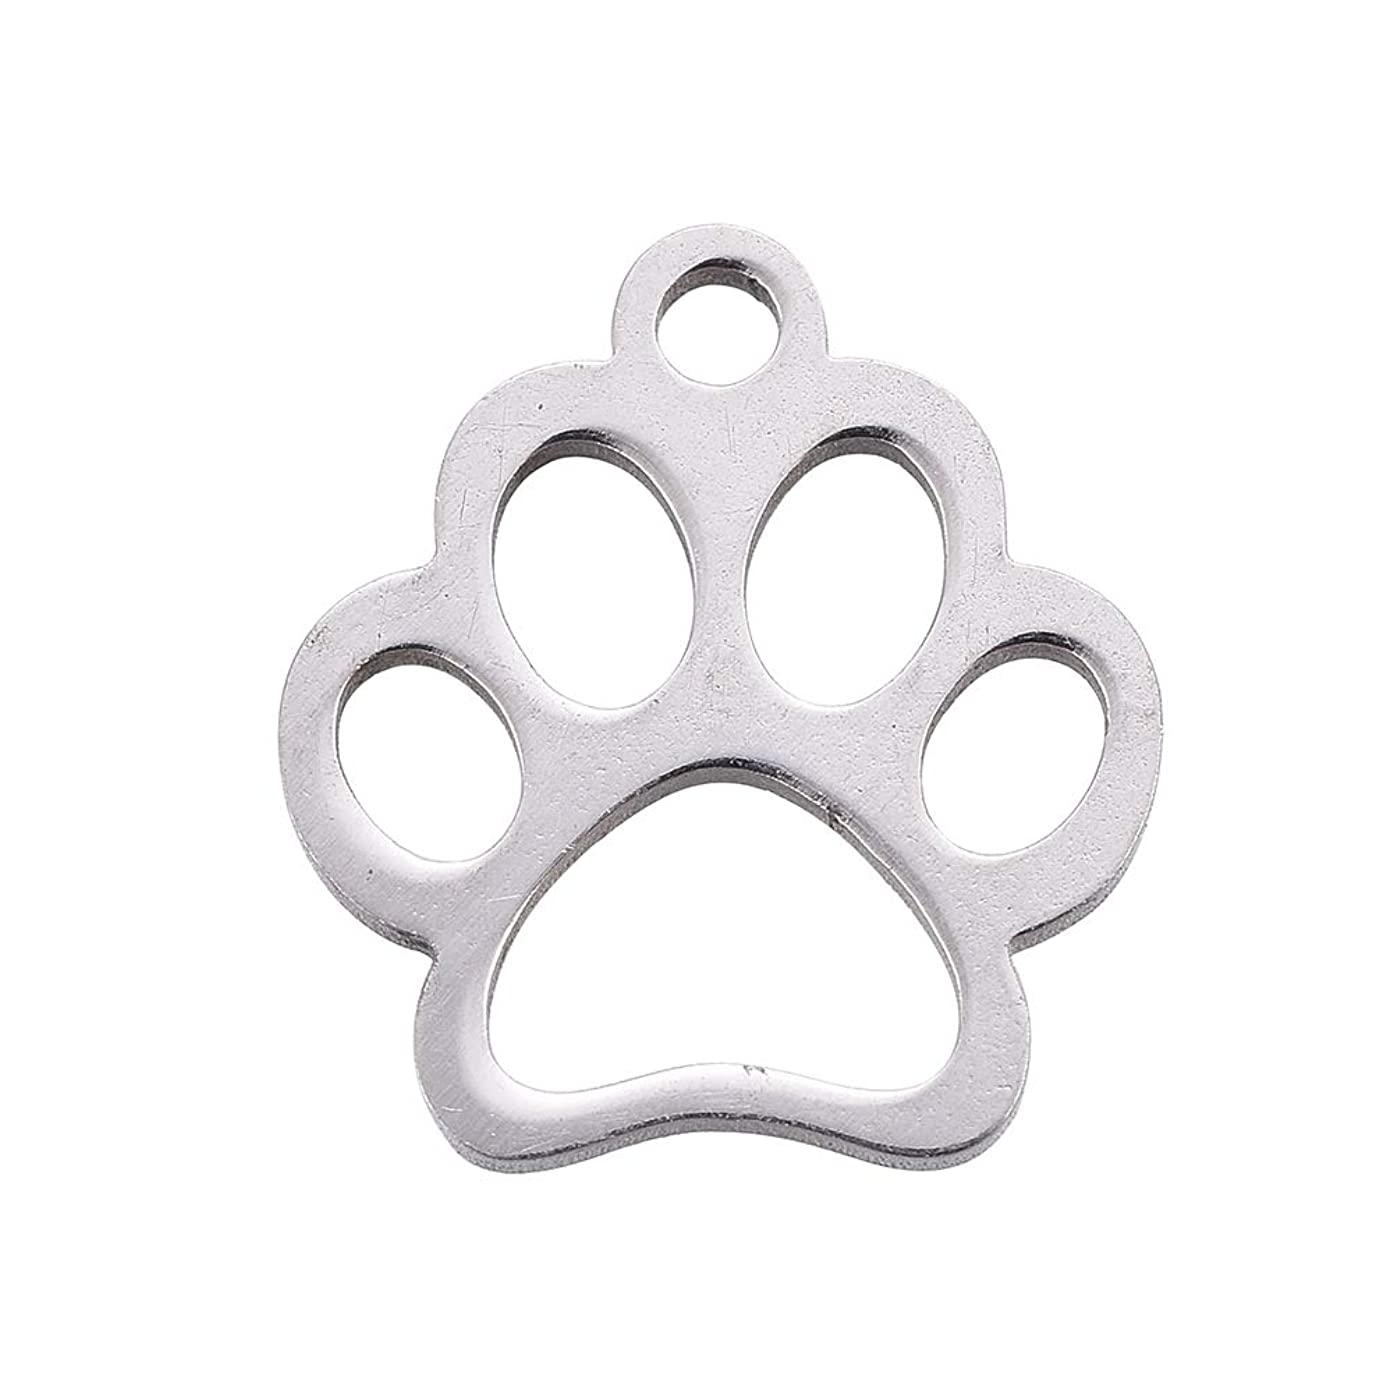 DanLingJewelry 304 Stainless Steel Dog Paw Print Charm Doggy Cat Animal Footprint Pendant for DIY Crafting Bracelet Necklace Jewelry Findings(Stainless Steel Color-20pcs,12.9 x 11.8 x 1mm,Hole: 1.5mm)